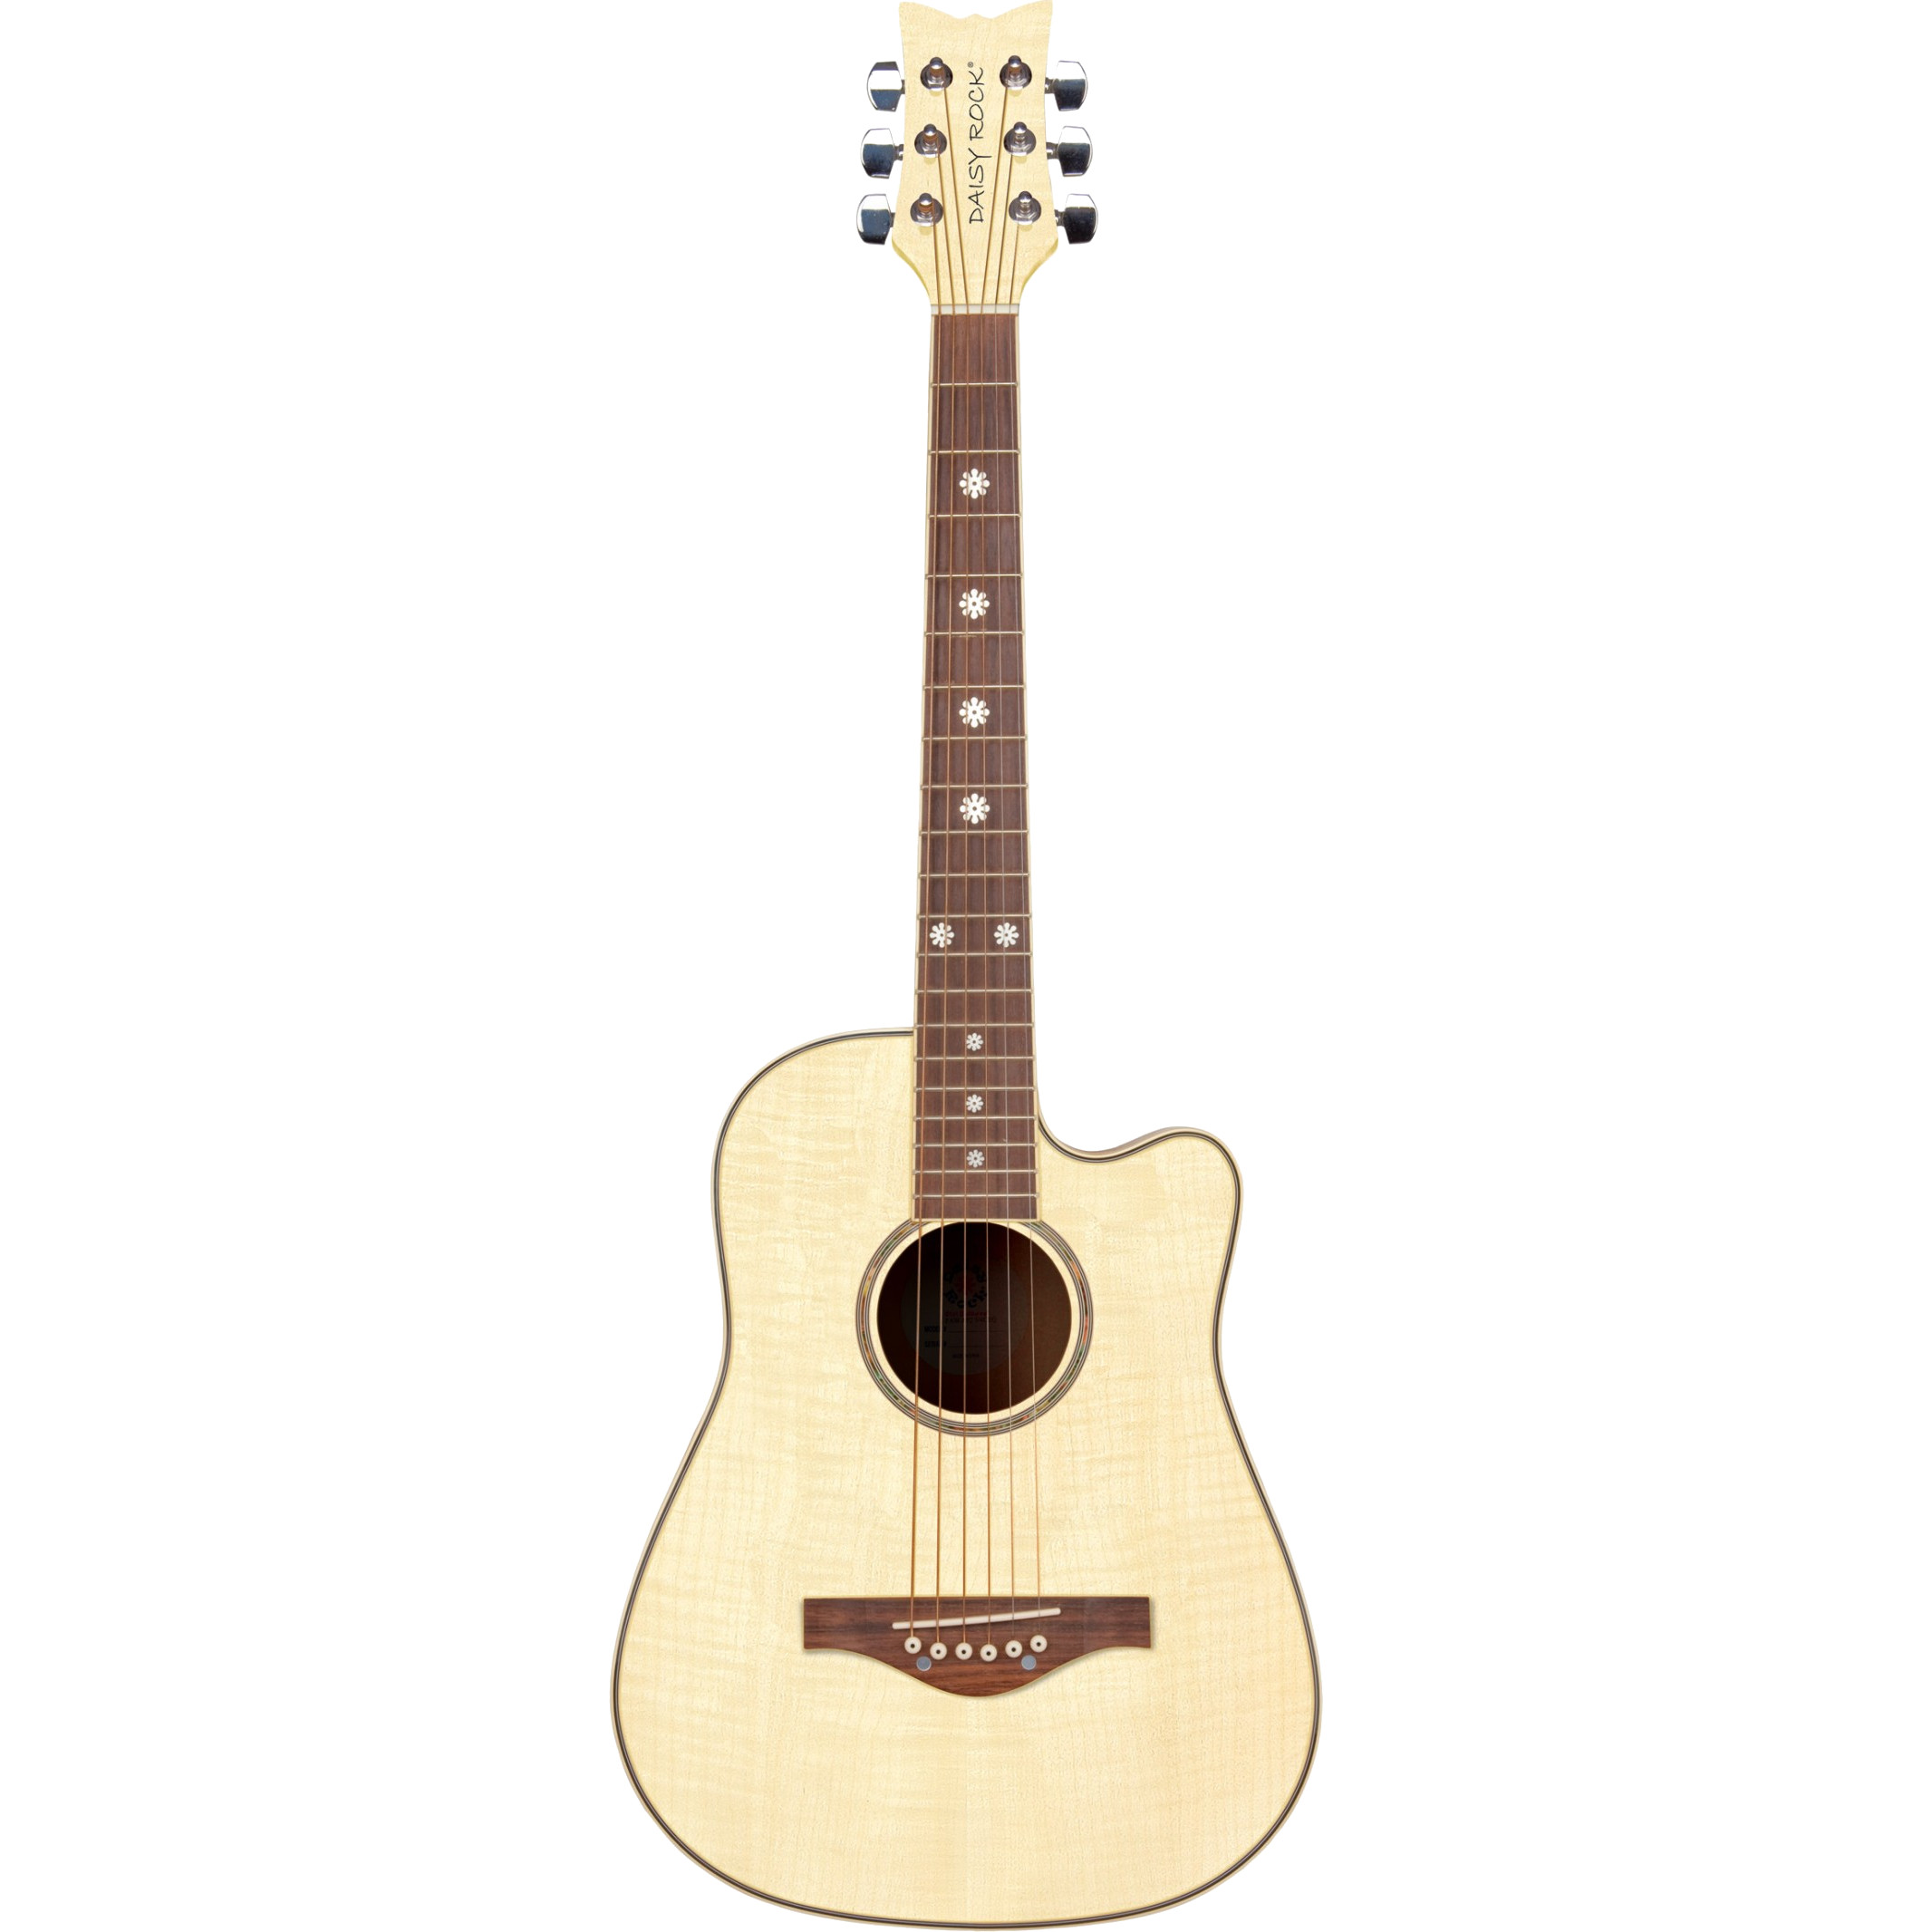 Daisy Rock Wildwood Acoustic 3 4 acoustic guitar, Beach Blonde